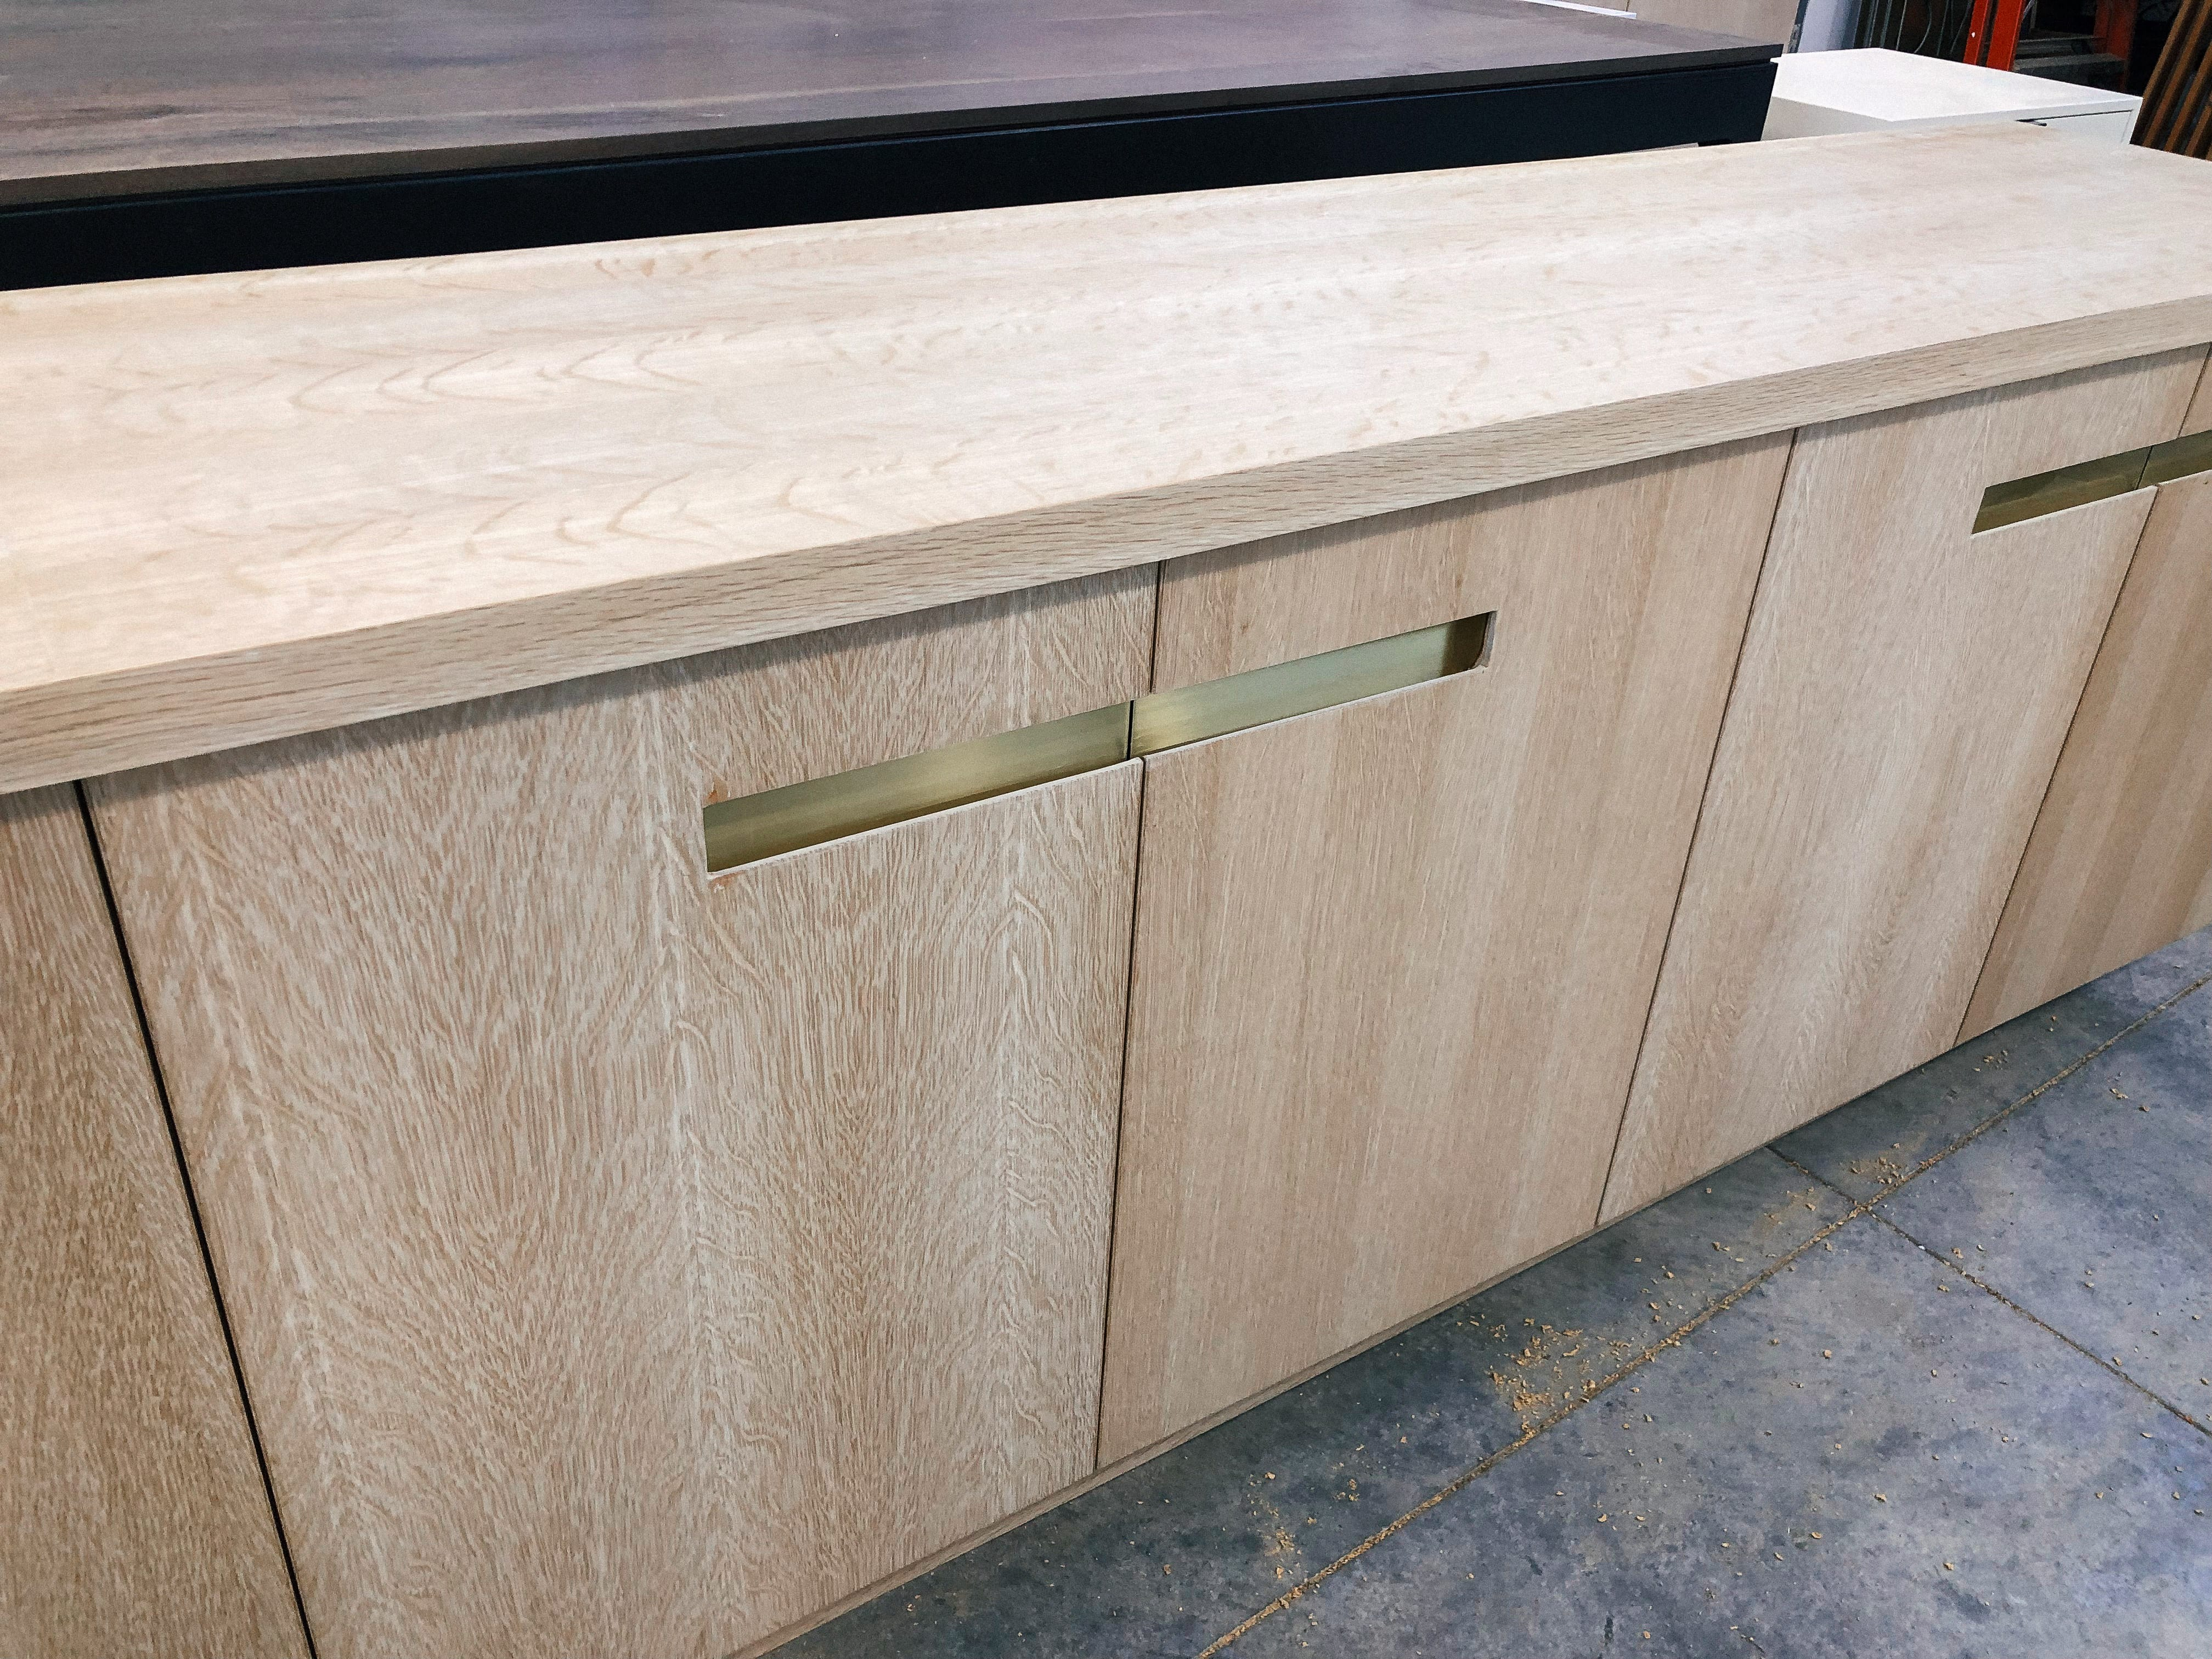 Oak and brass home office built-in